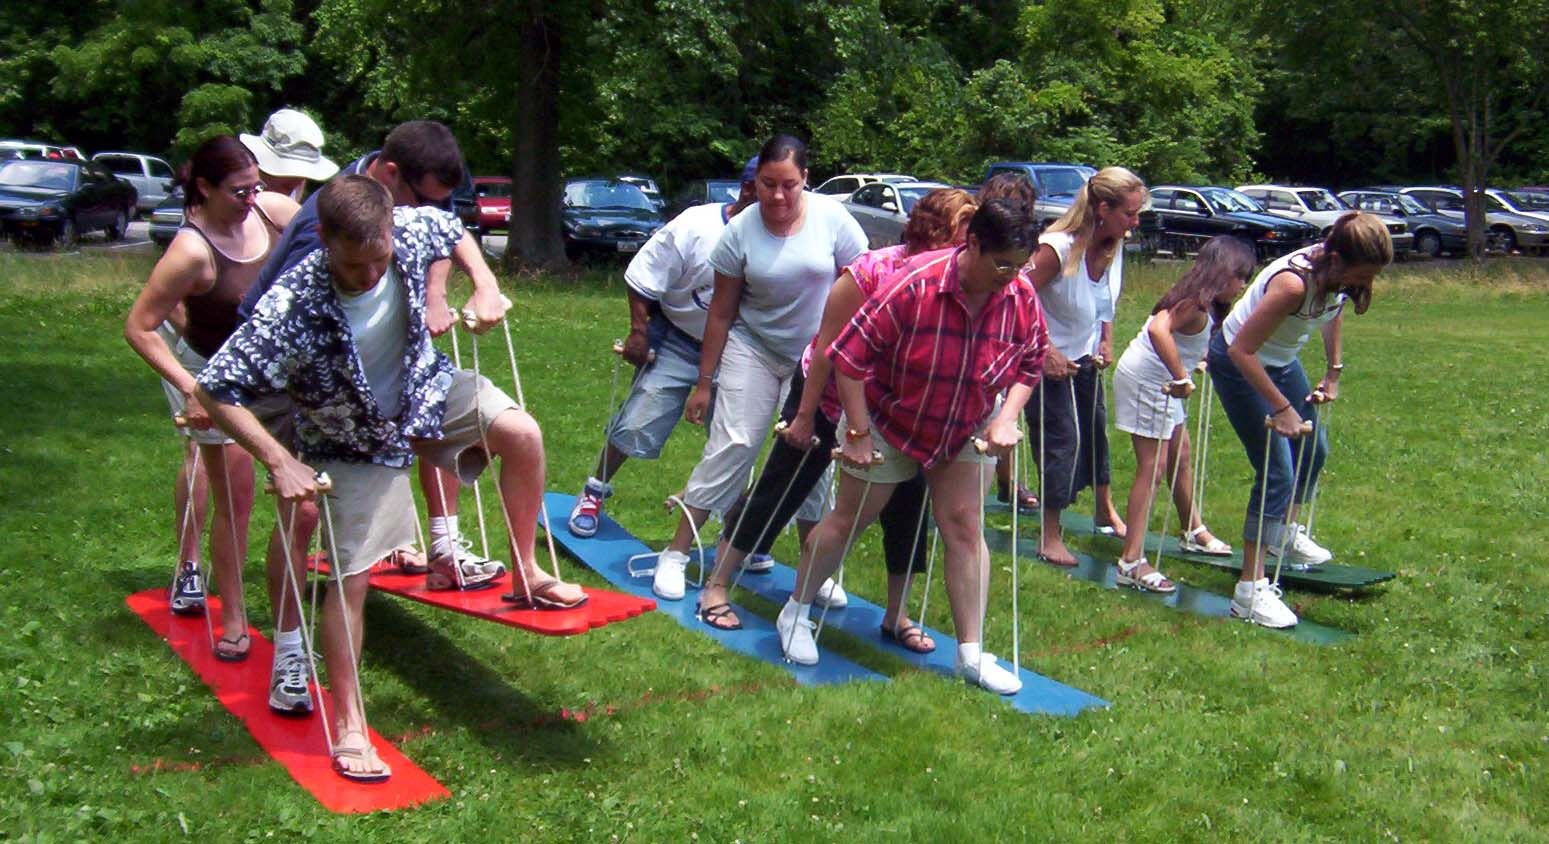 Graduation party games company picnics kentucky ohio for Fun parties for adults